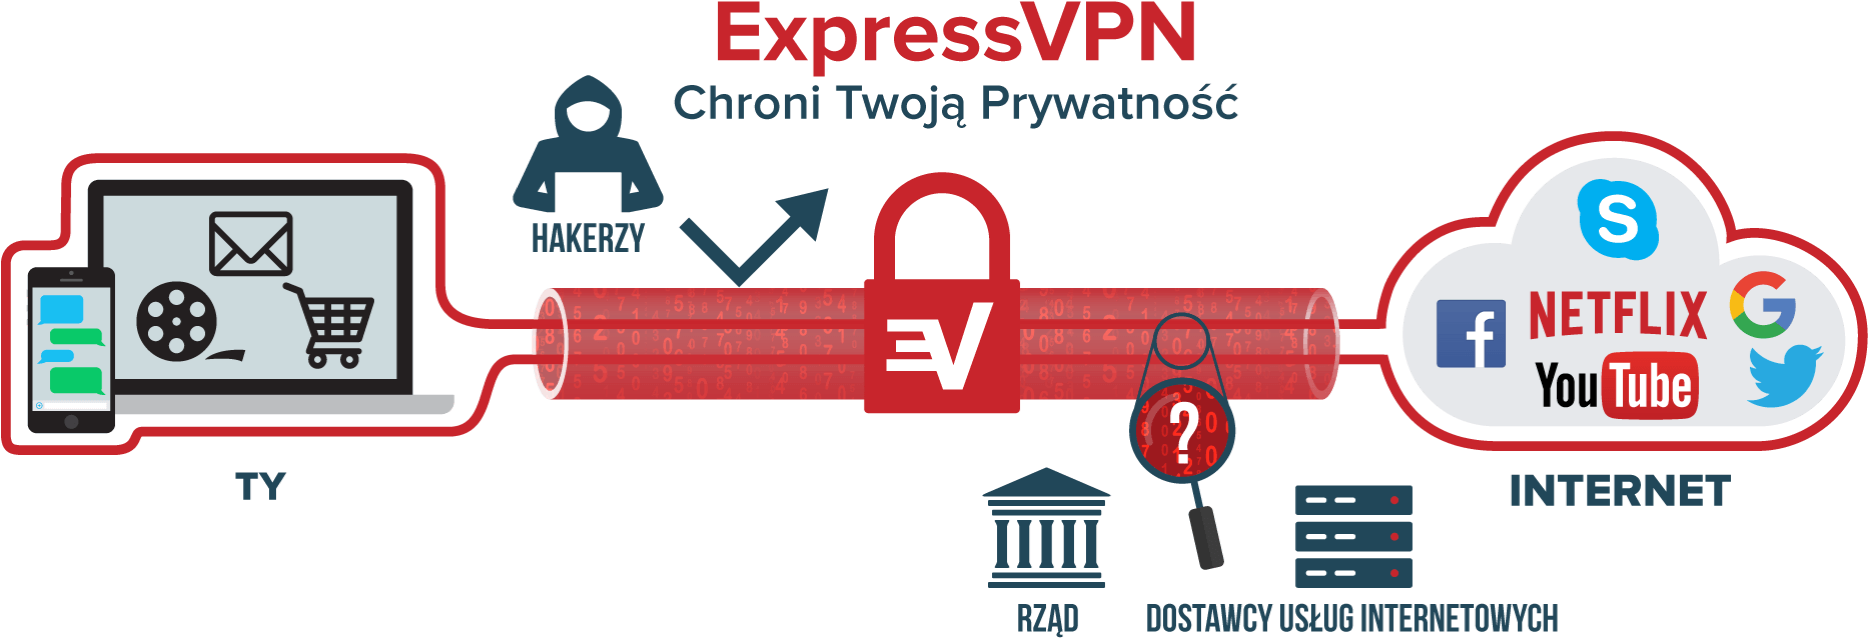 A diagram showing how ExpressVPN forms a tunnel to protect your transmissions.